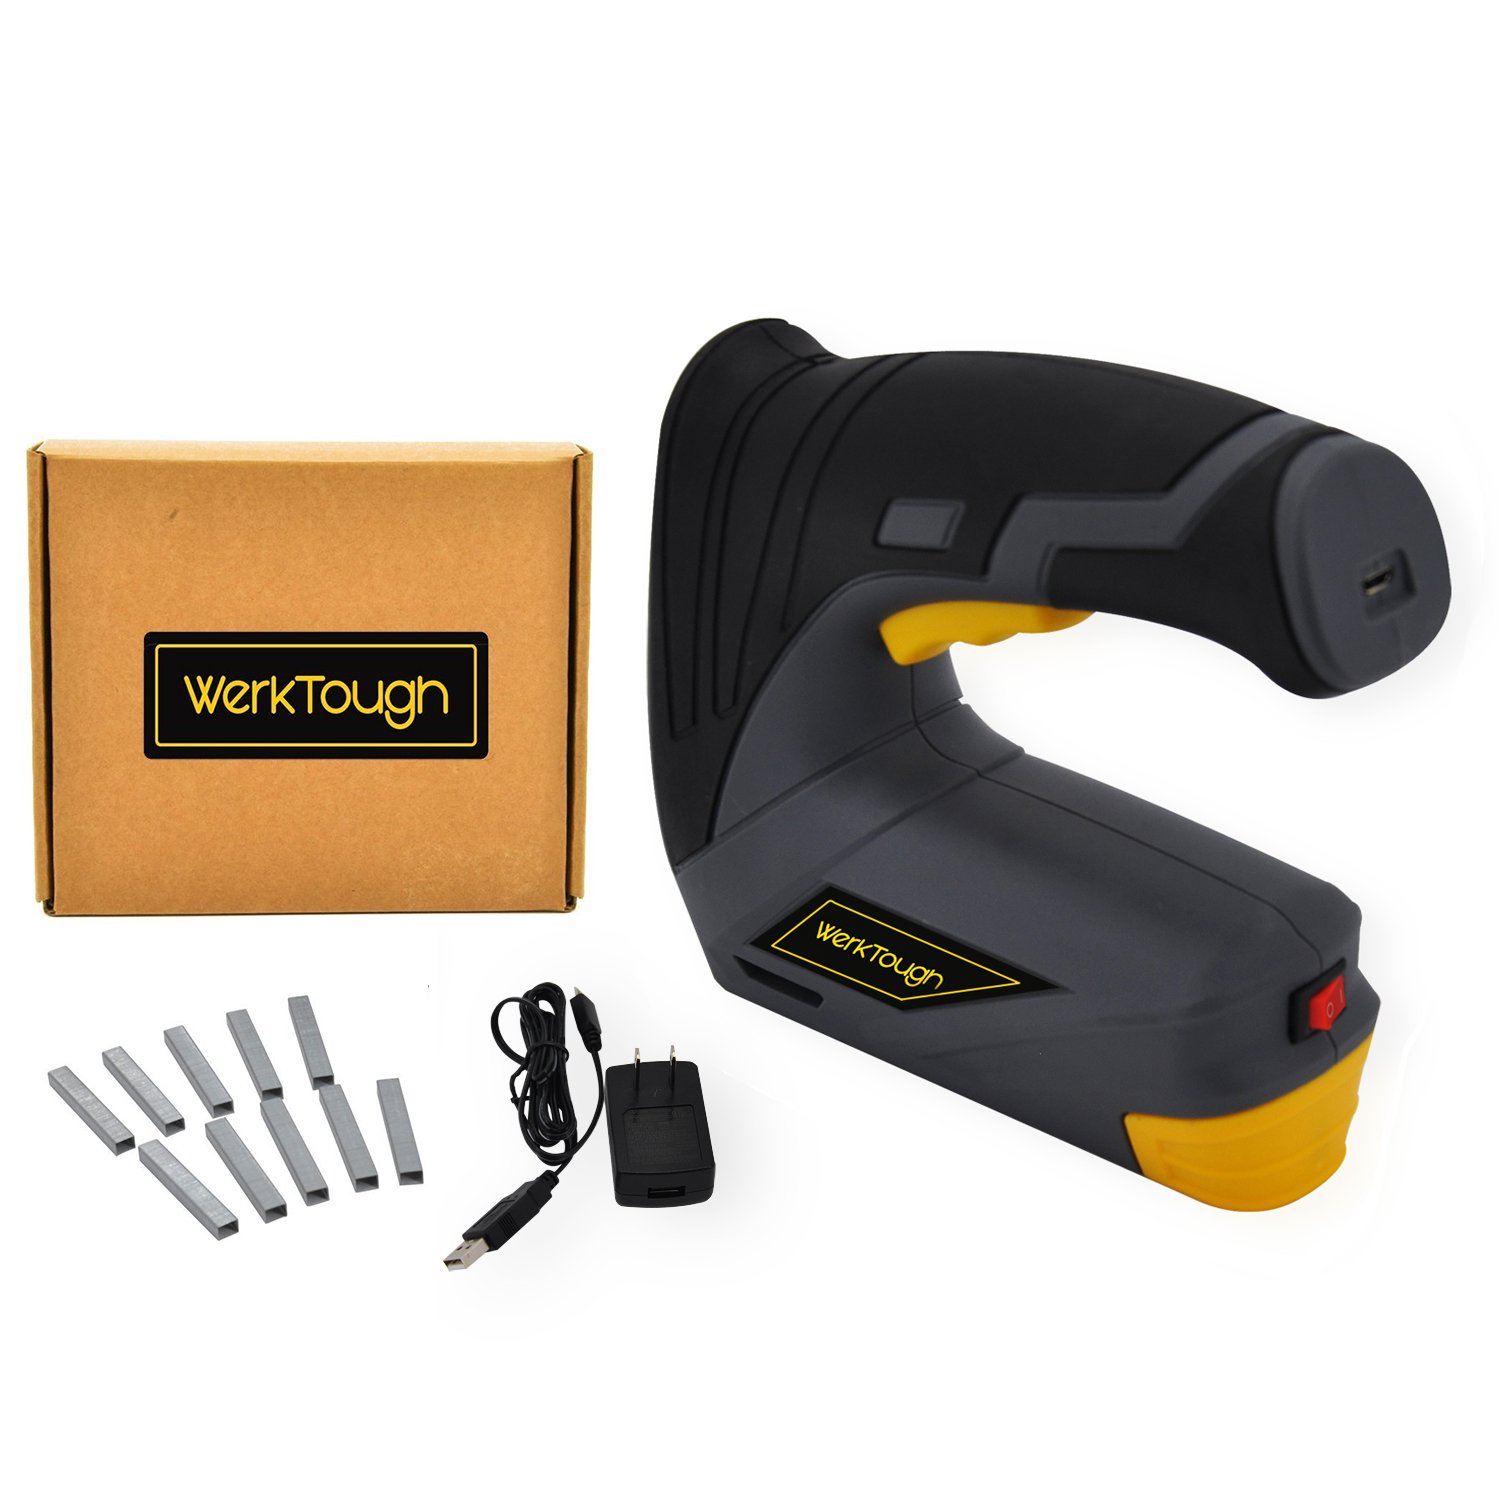 Werktough CSG01 Cordless Staple Gun DIY Electric Stapler with Carrying Box Rechargeable USB Charger by Werktough